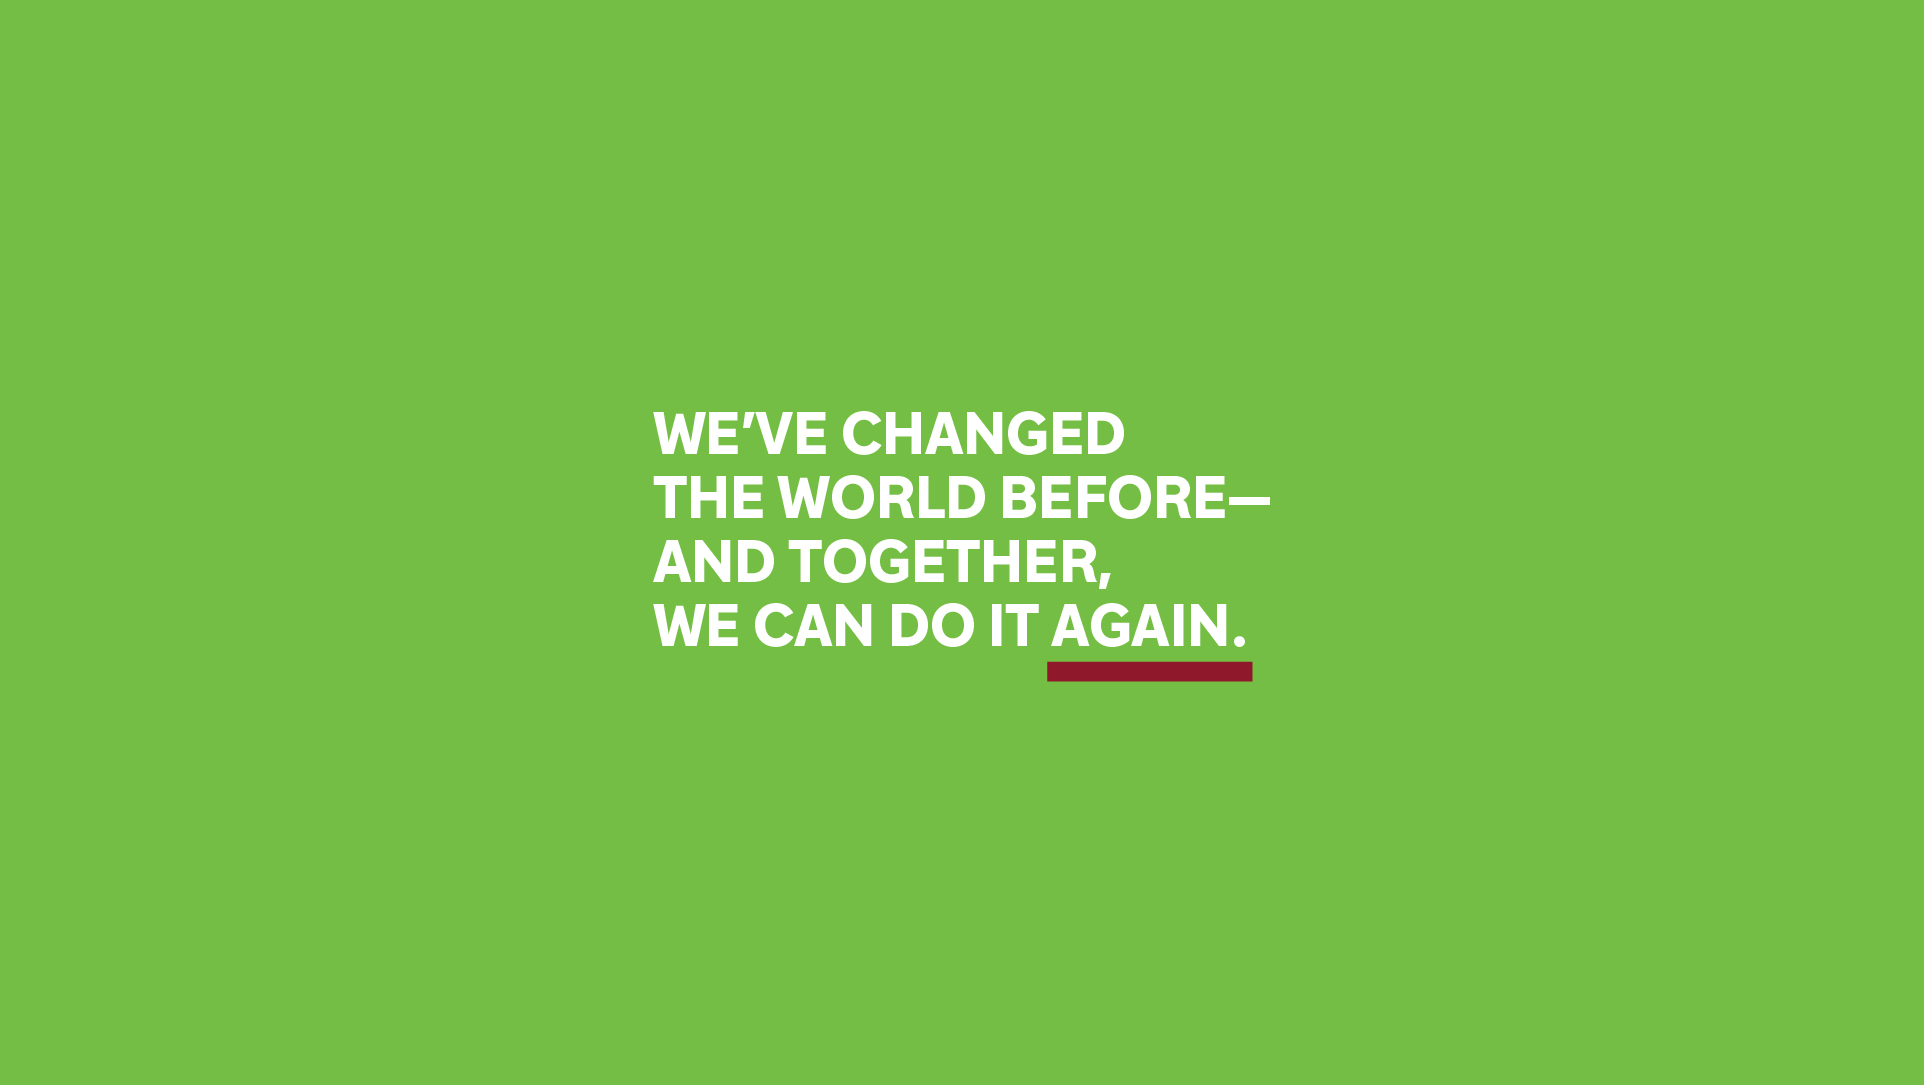 We've changed the world before—together we can do it again.